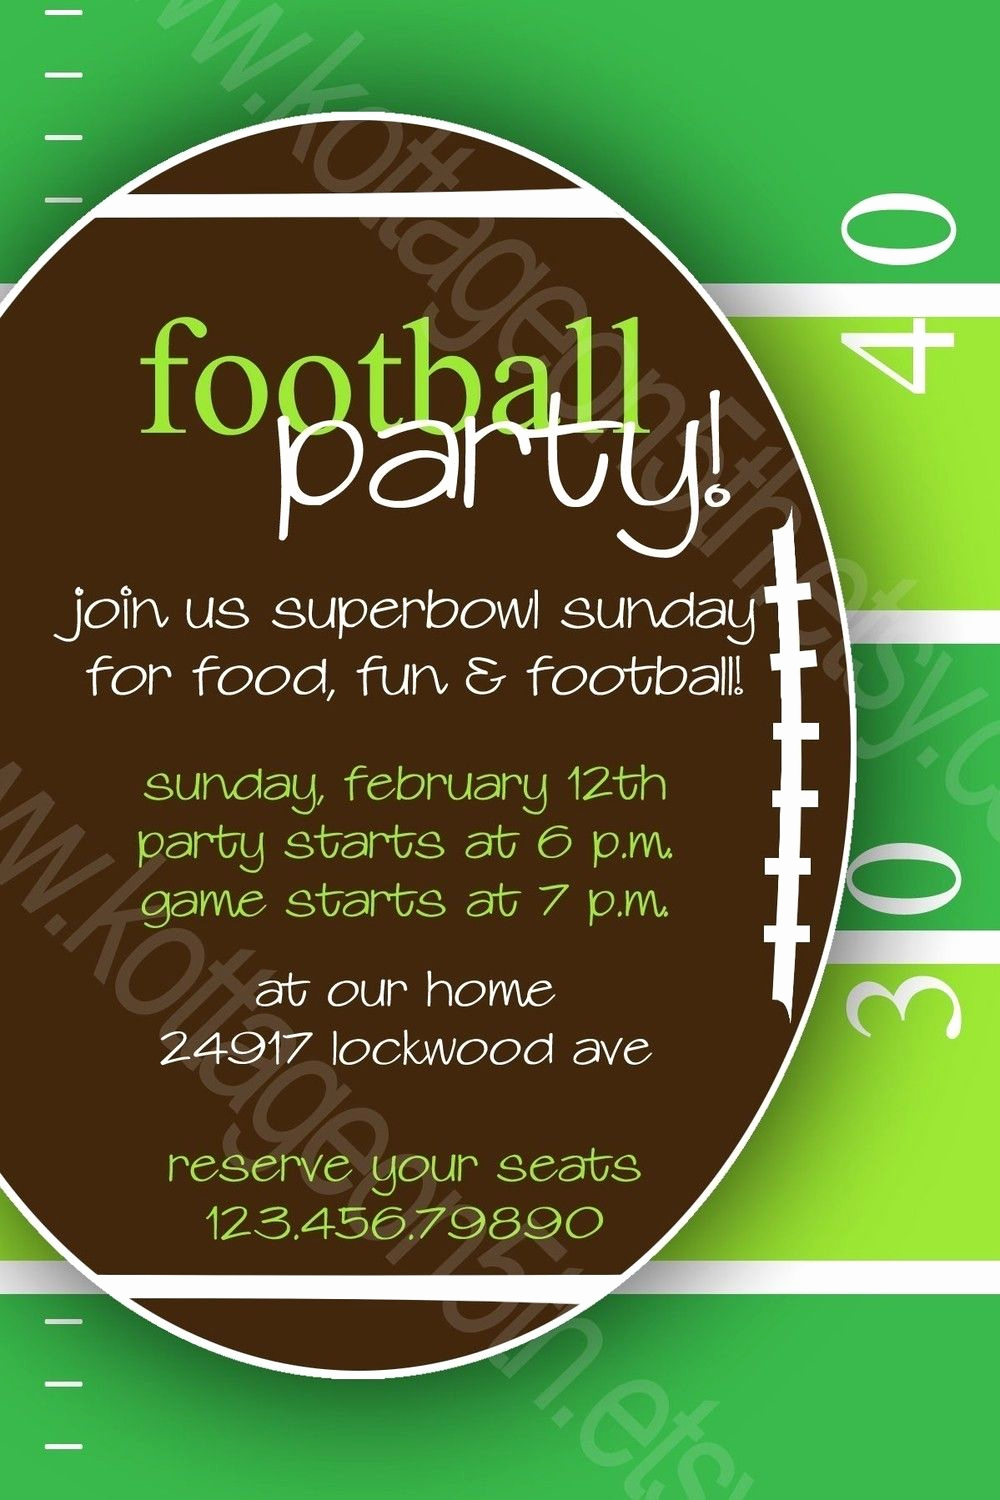 Super Bowl Invitation Ideas Elegant Monday Night or Superbowl Sunday Football Fan Party